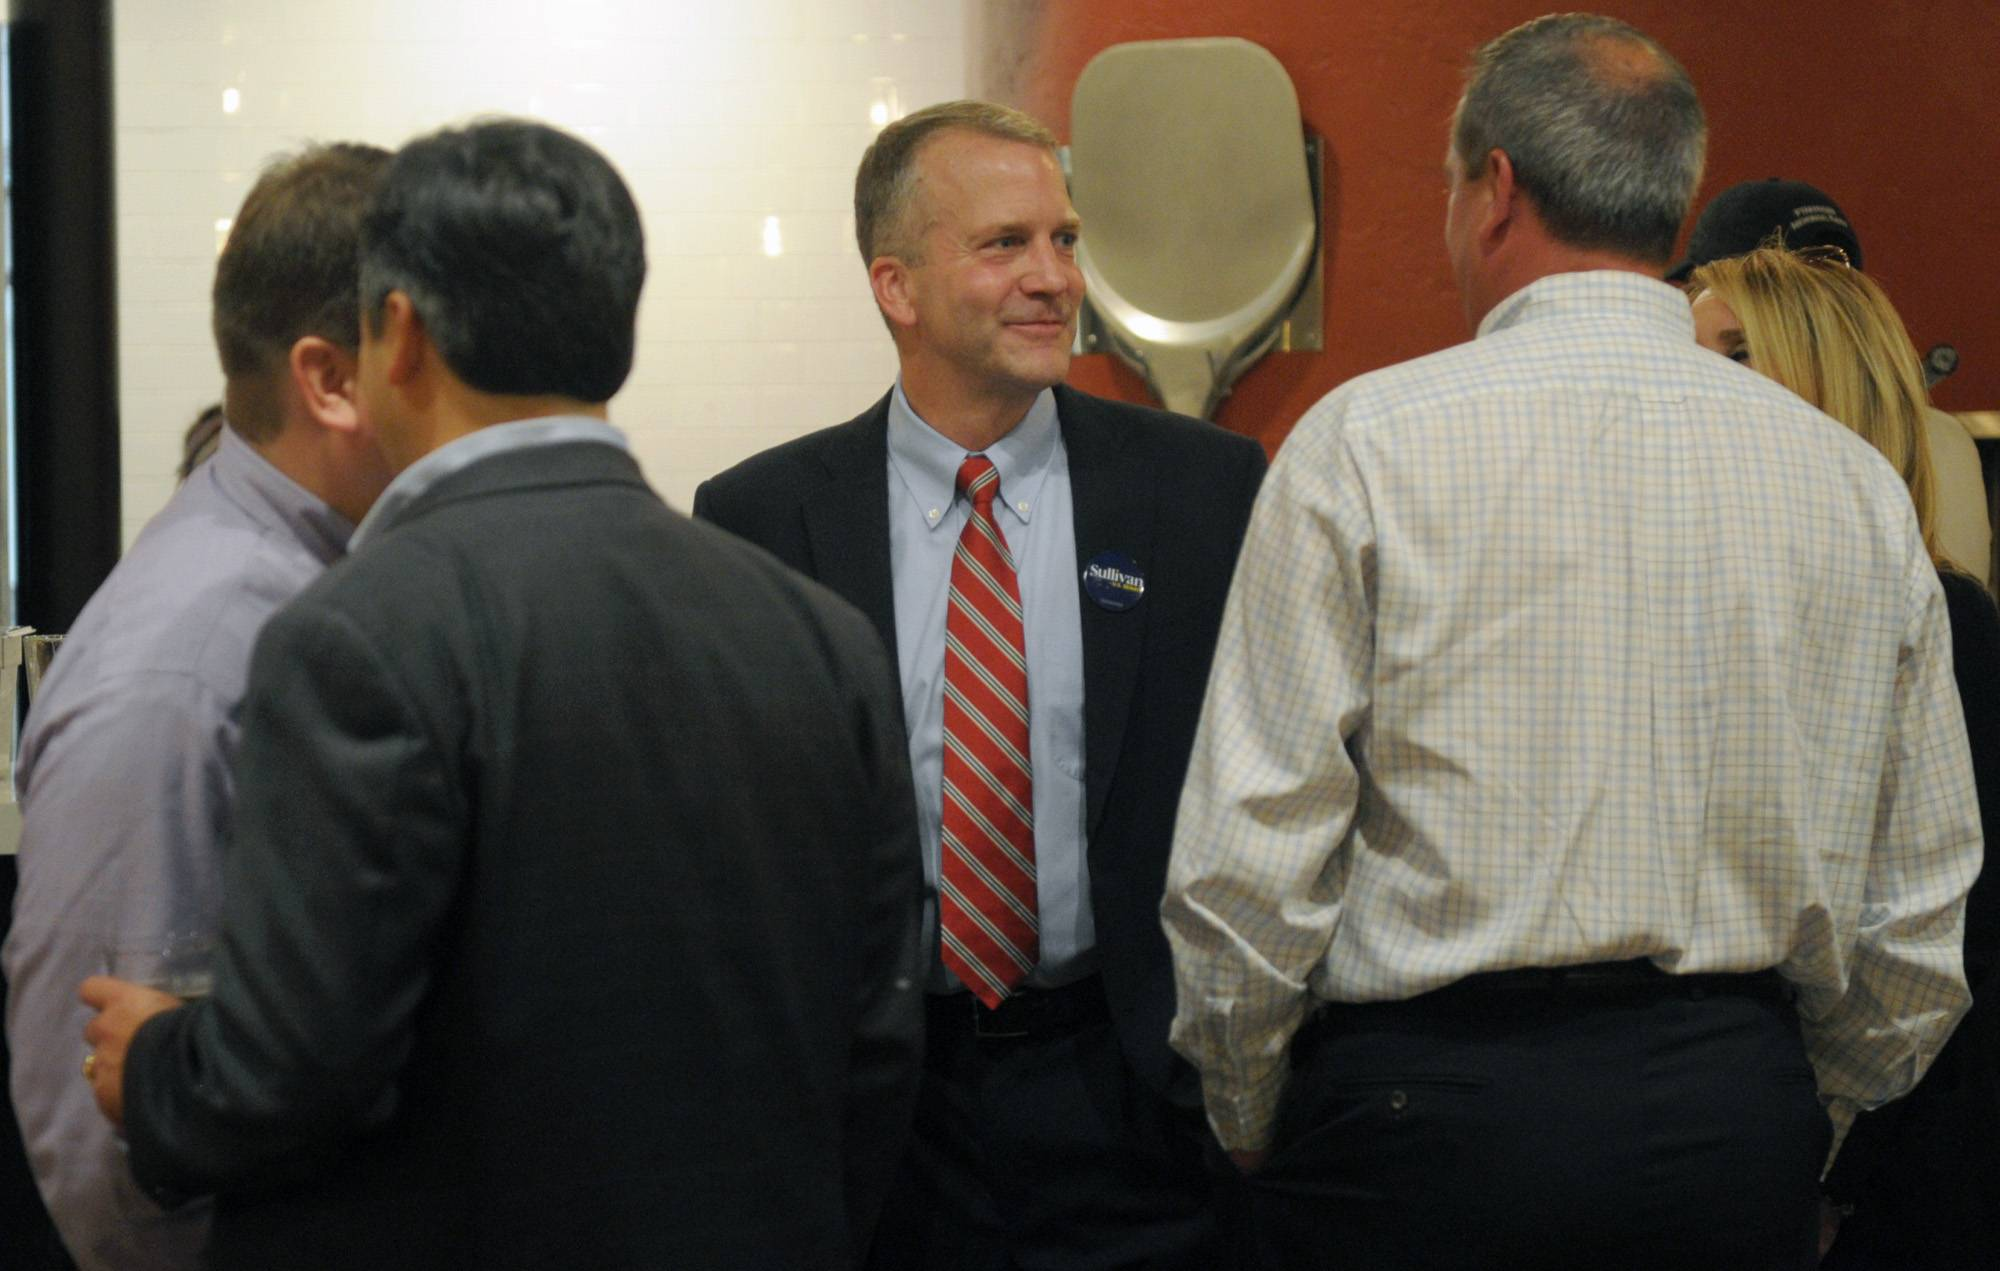 Former state Attorney General Dan Sullivan became the latest mainstream Republican to turn back a Tea Party challenger, winning the Alaska GOP primary to become his party's candidate to take on U.S. Sen. Mark Begich in the fall.